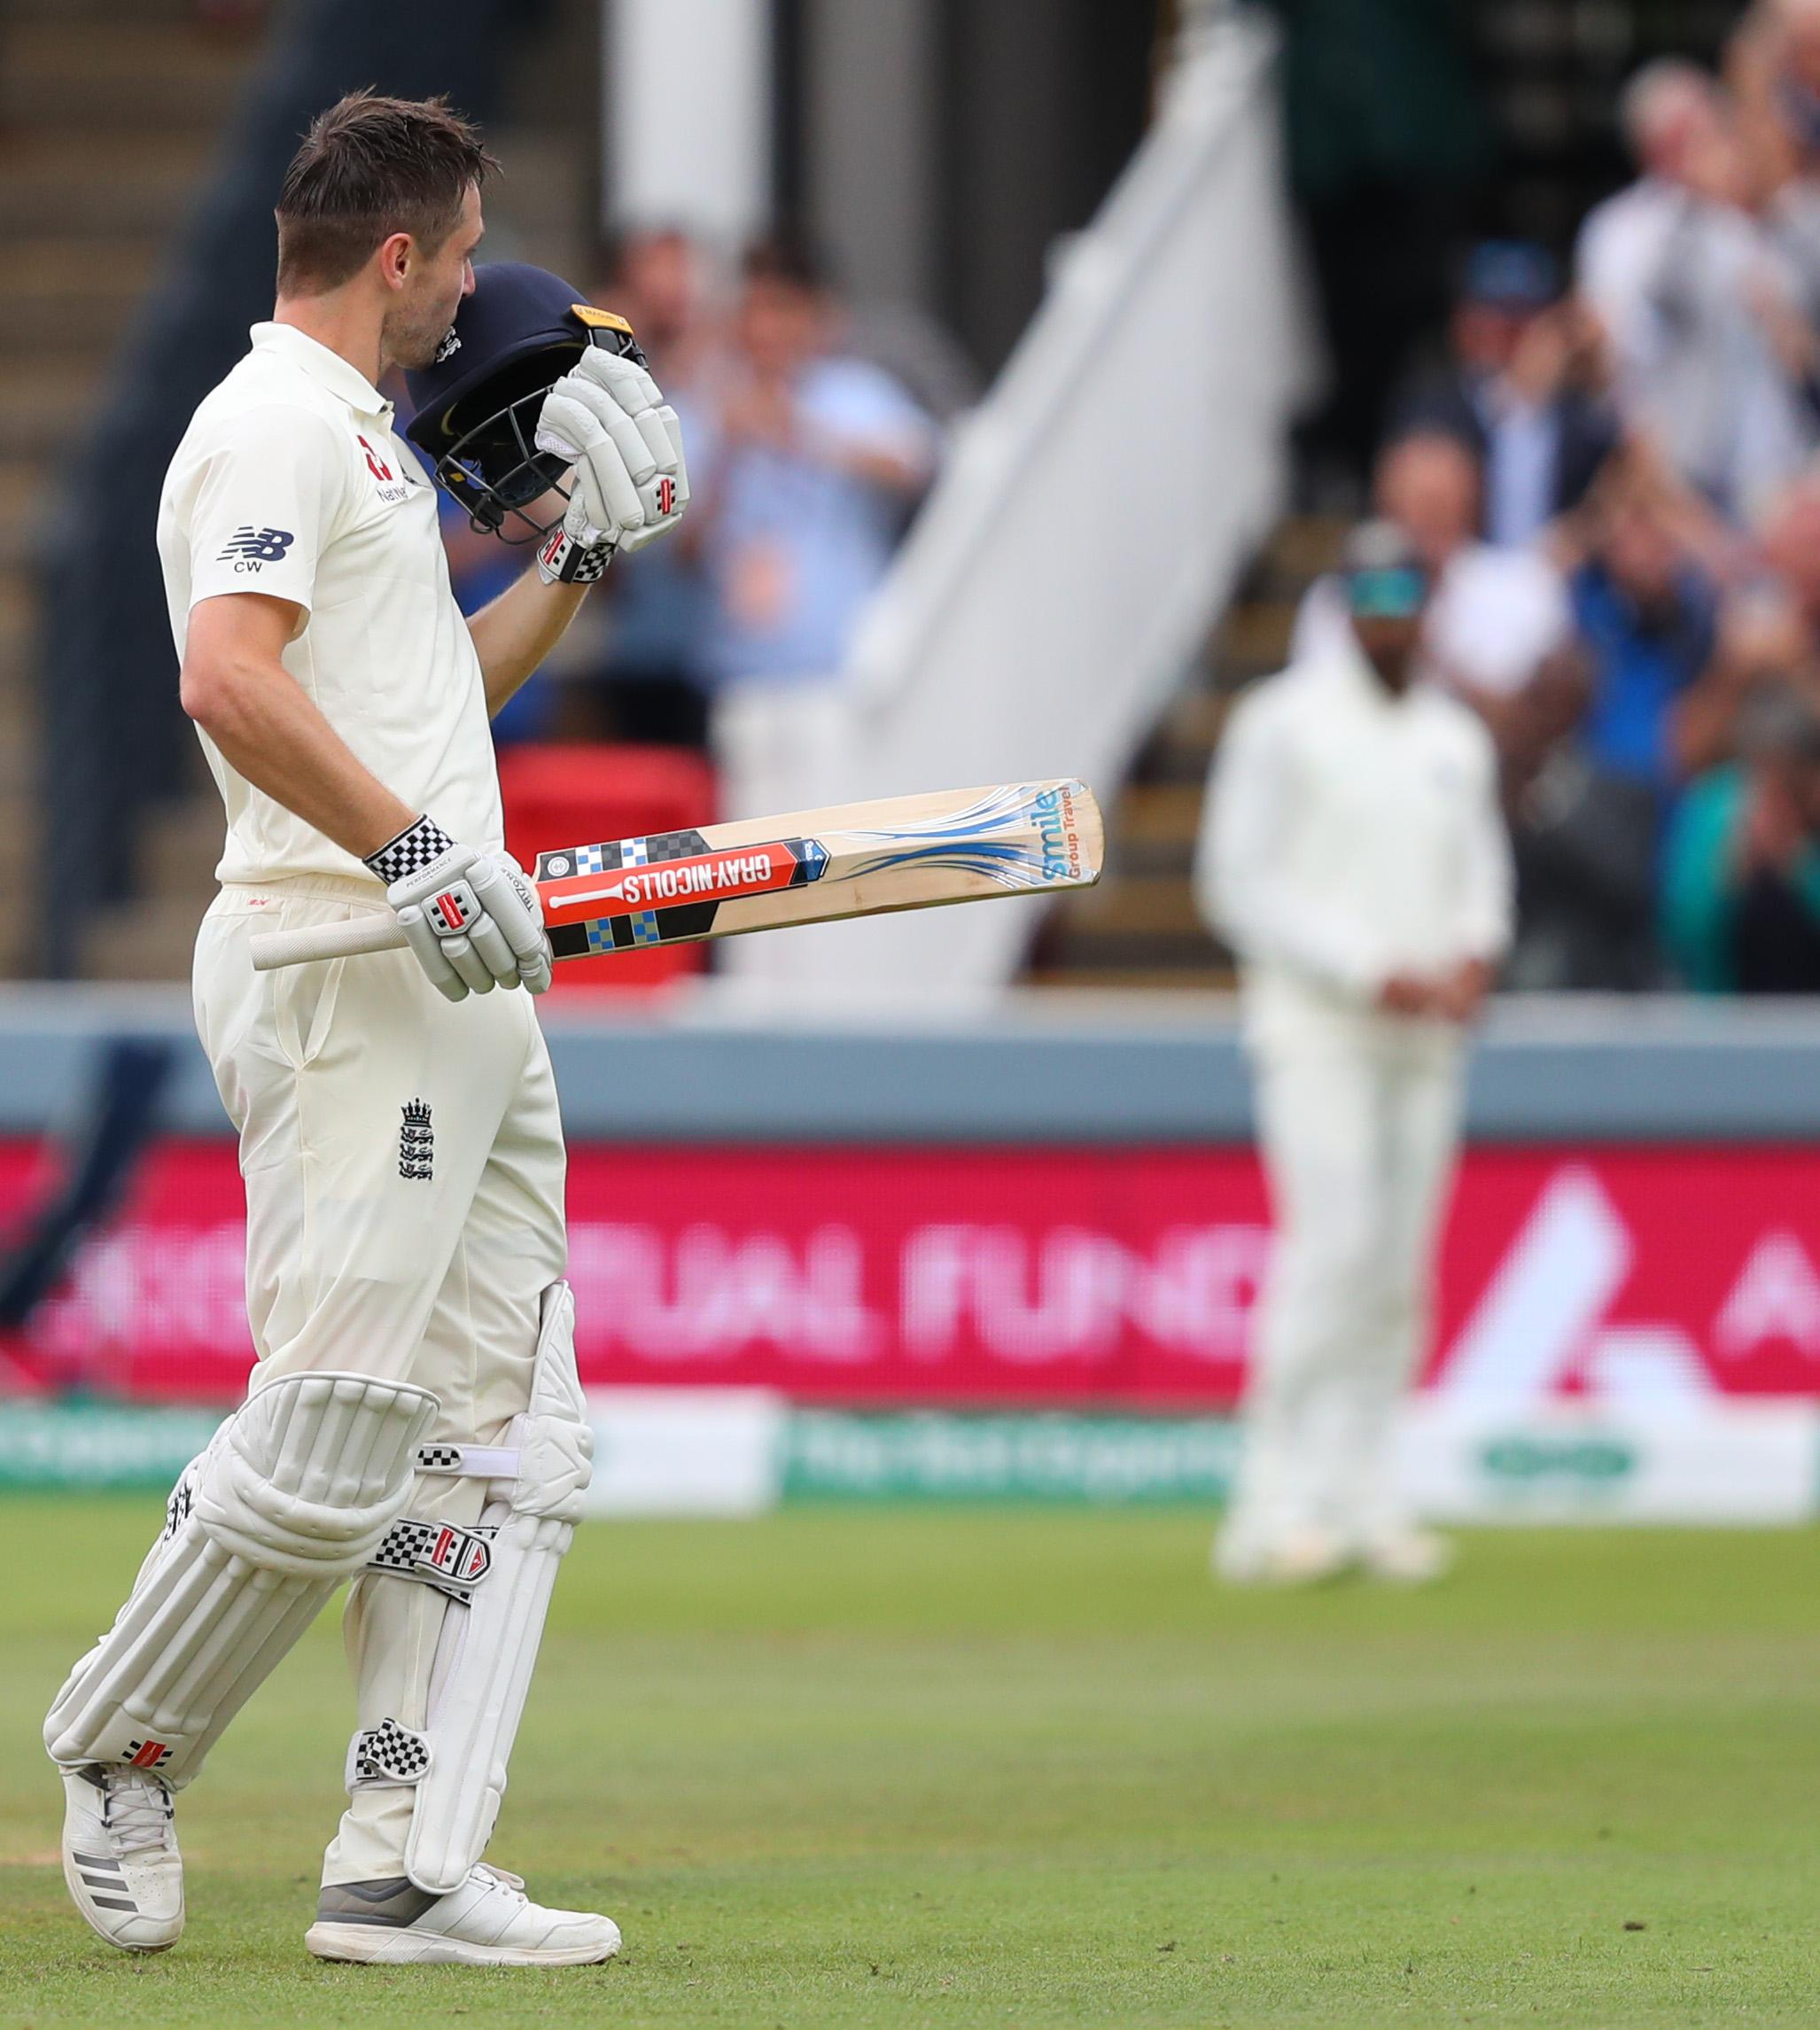 The all-rounder kissed his helmet upon reaching his century